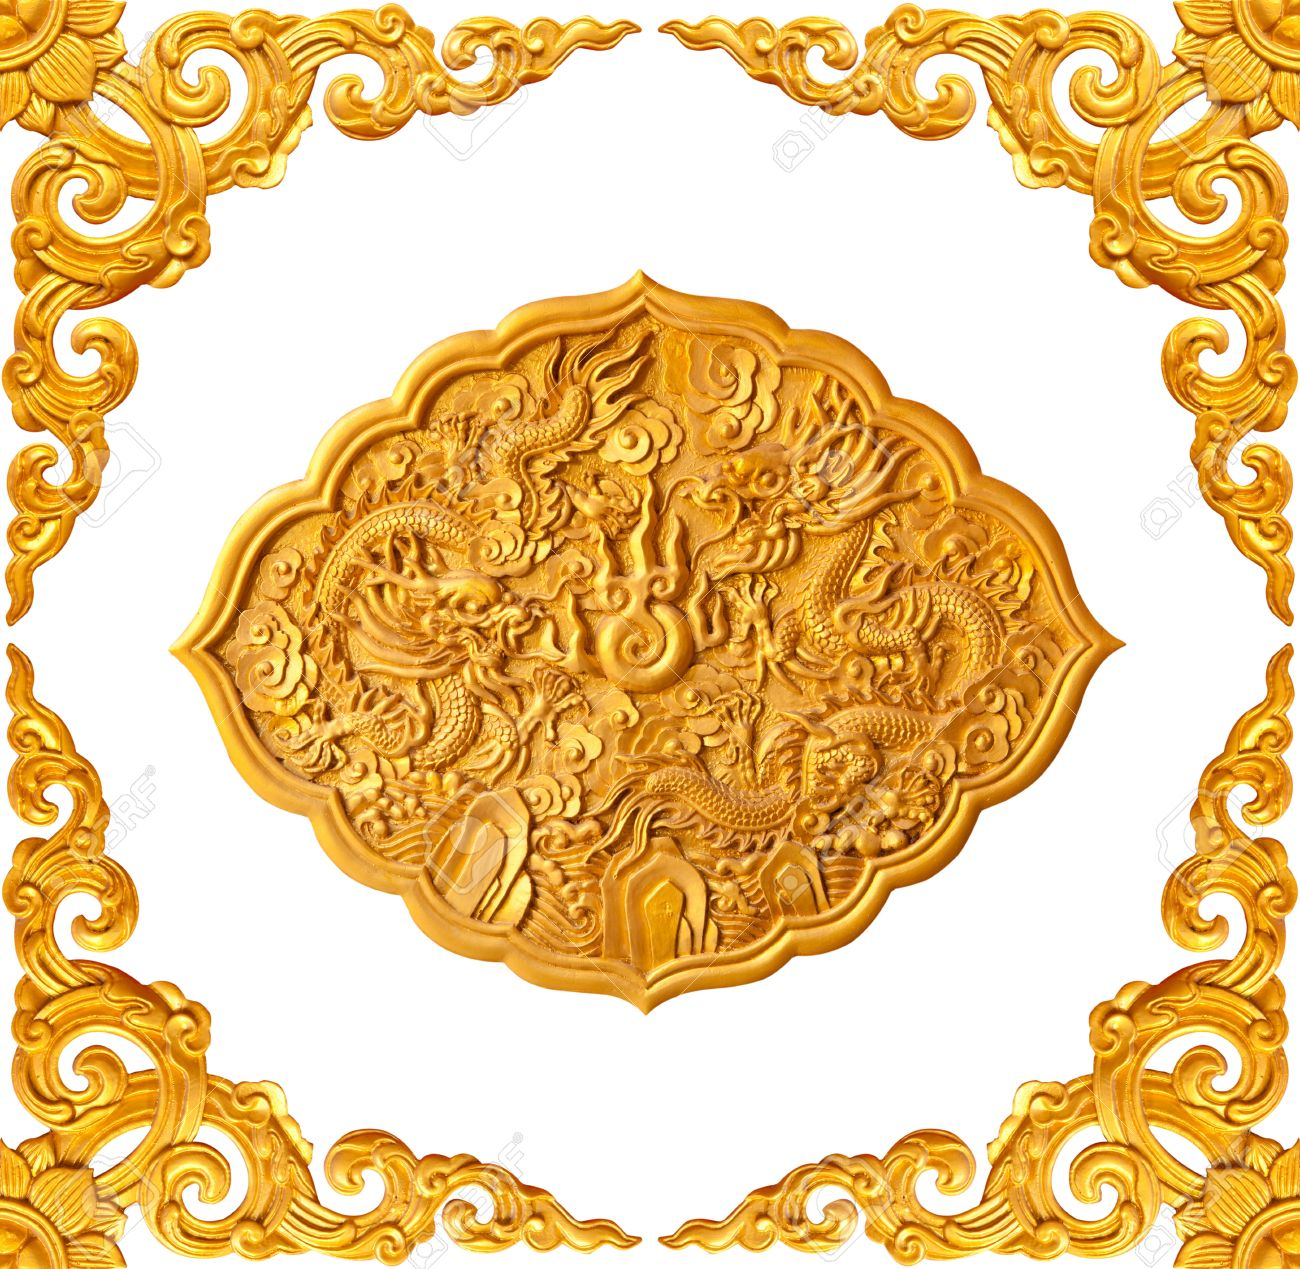 golden frame and dragon carve isolated on white background - 17688686